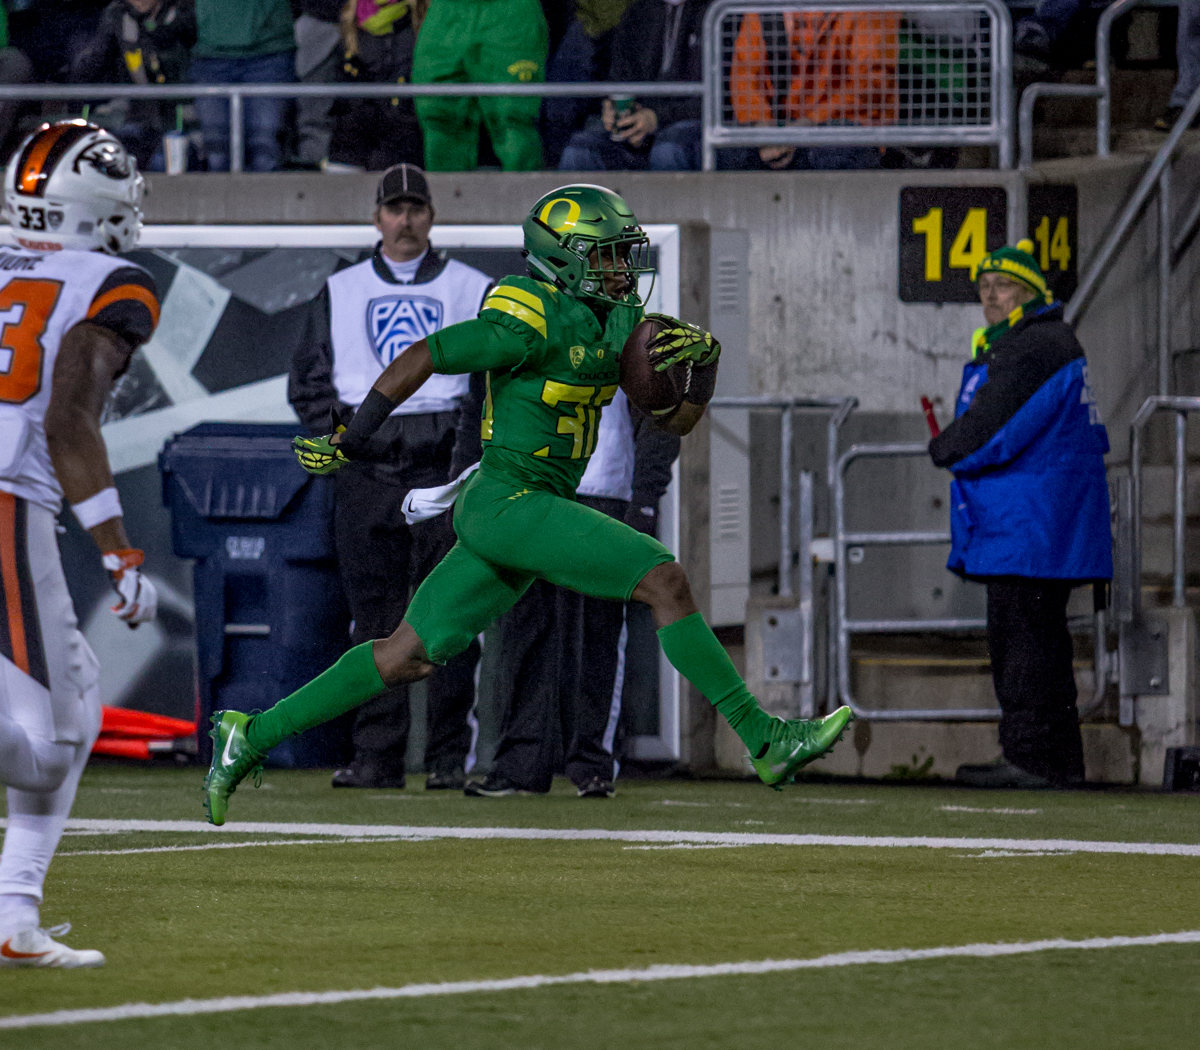 Oregon wide receiver Jaylon Redd (#30) runs the ball for a touchdown. The Oregon Ducks lead the Oregon State Beavers 52 to 7 at the end of the first half of the 121st Civil War game on Saturday, November 25, 2017 at Autzen Stadium in Eugene, Ore. Photo by Ben Lonergan, Oregon News Lab